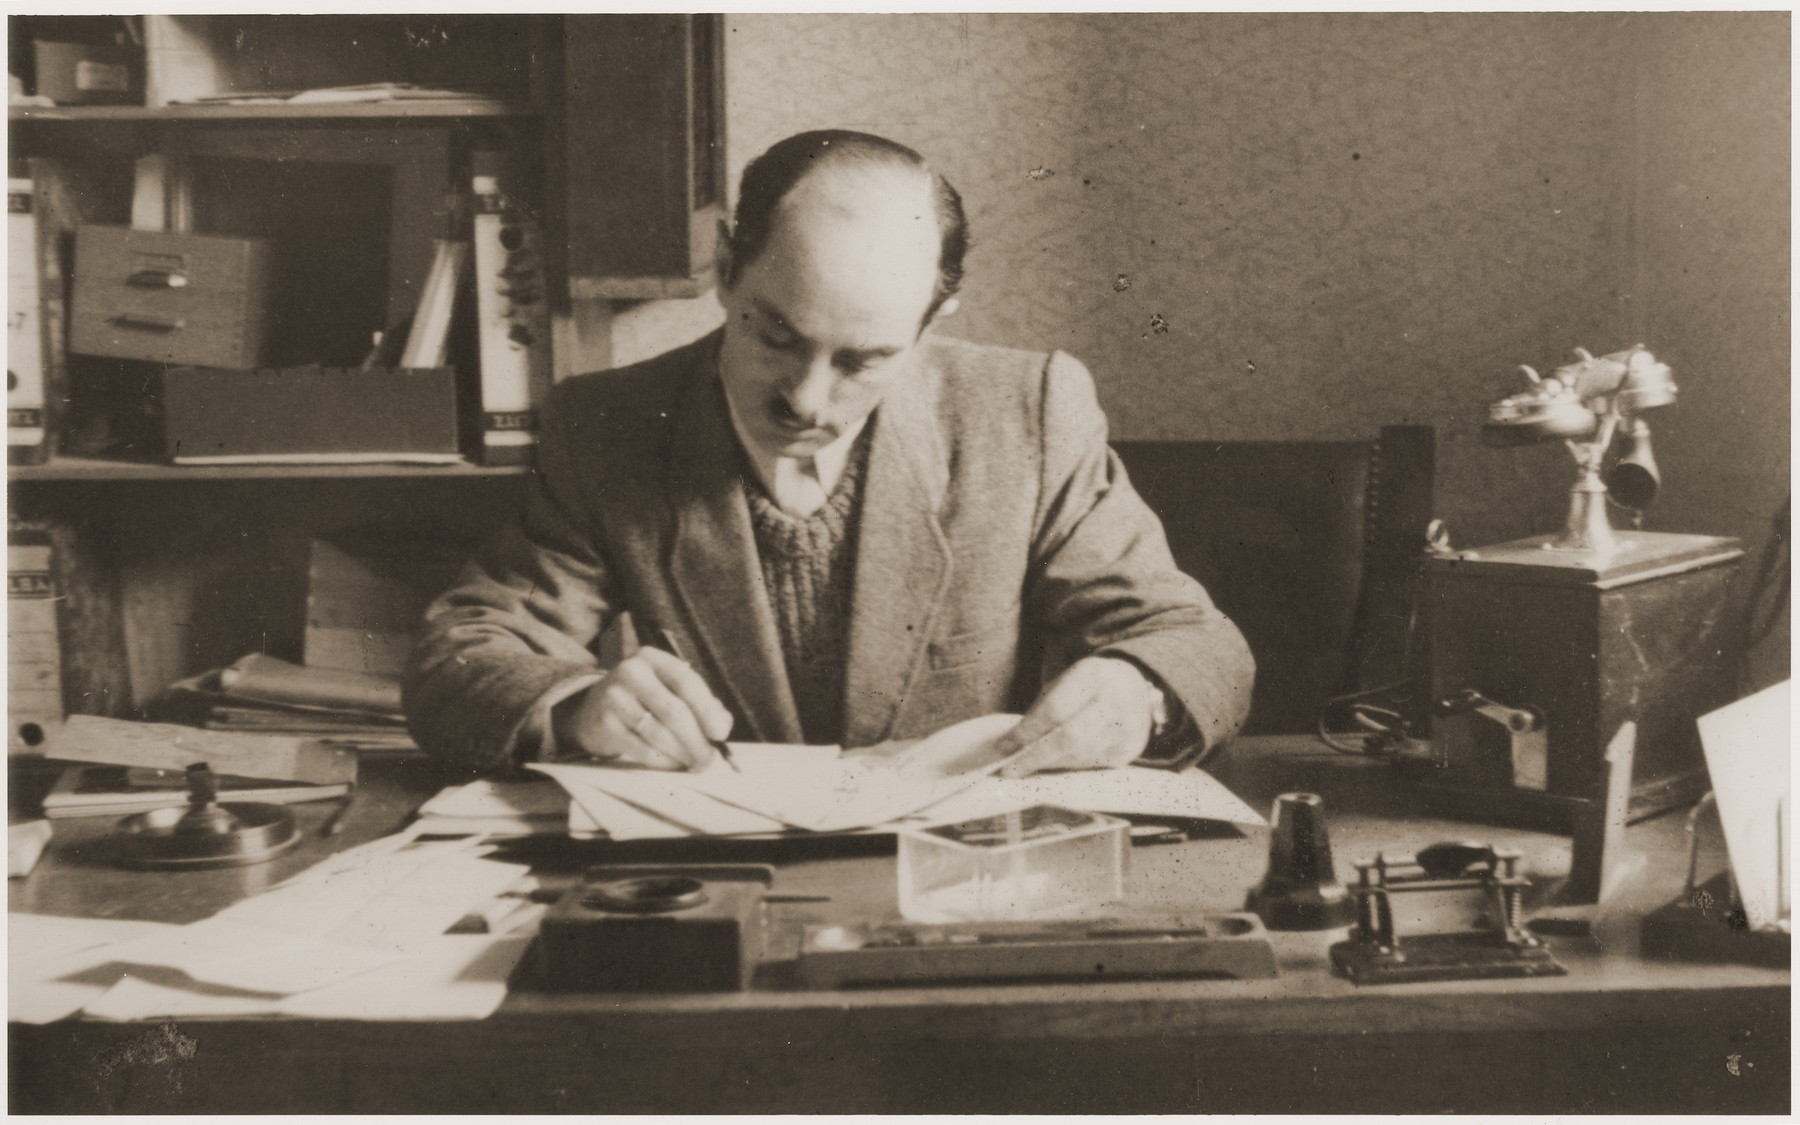 Camp administrator Noach Miedzinski works at his desk in the Kibbutz Nili hachshara (Zionist collective) in Pleikershof, Germany.  Some of the objects on his desk once belonged to Nazi war criminal Julius Streicher.